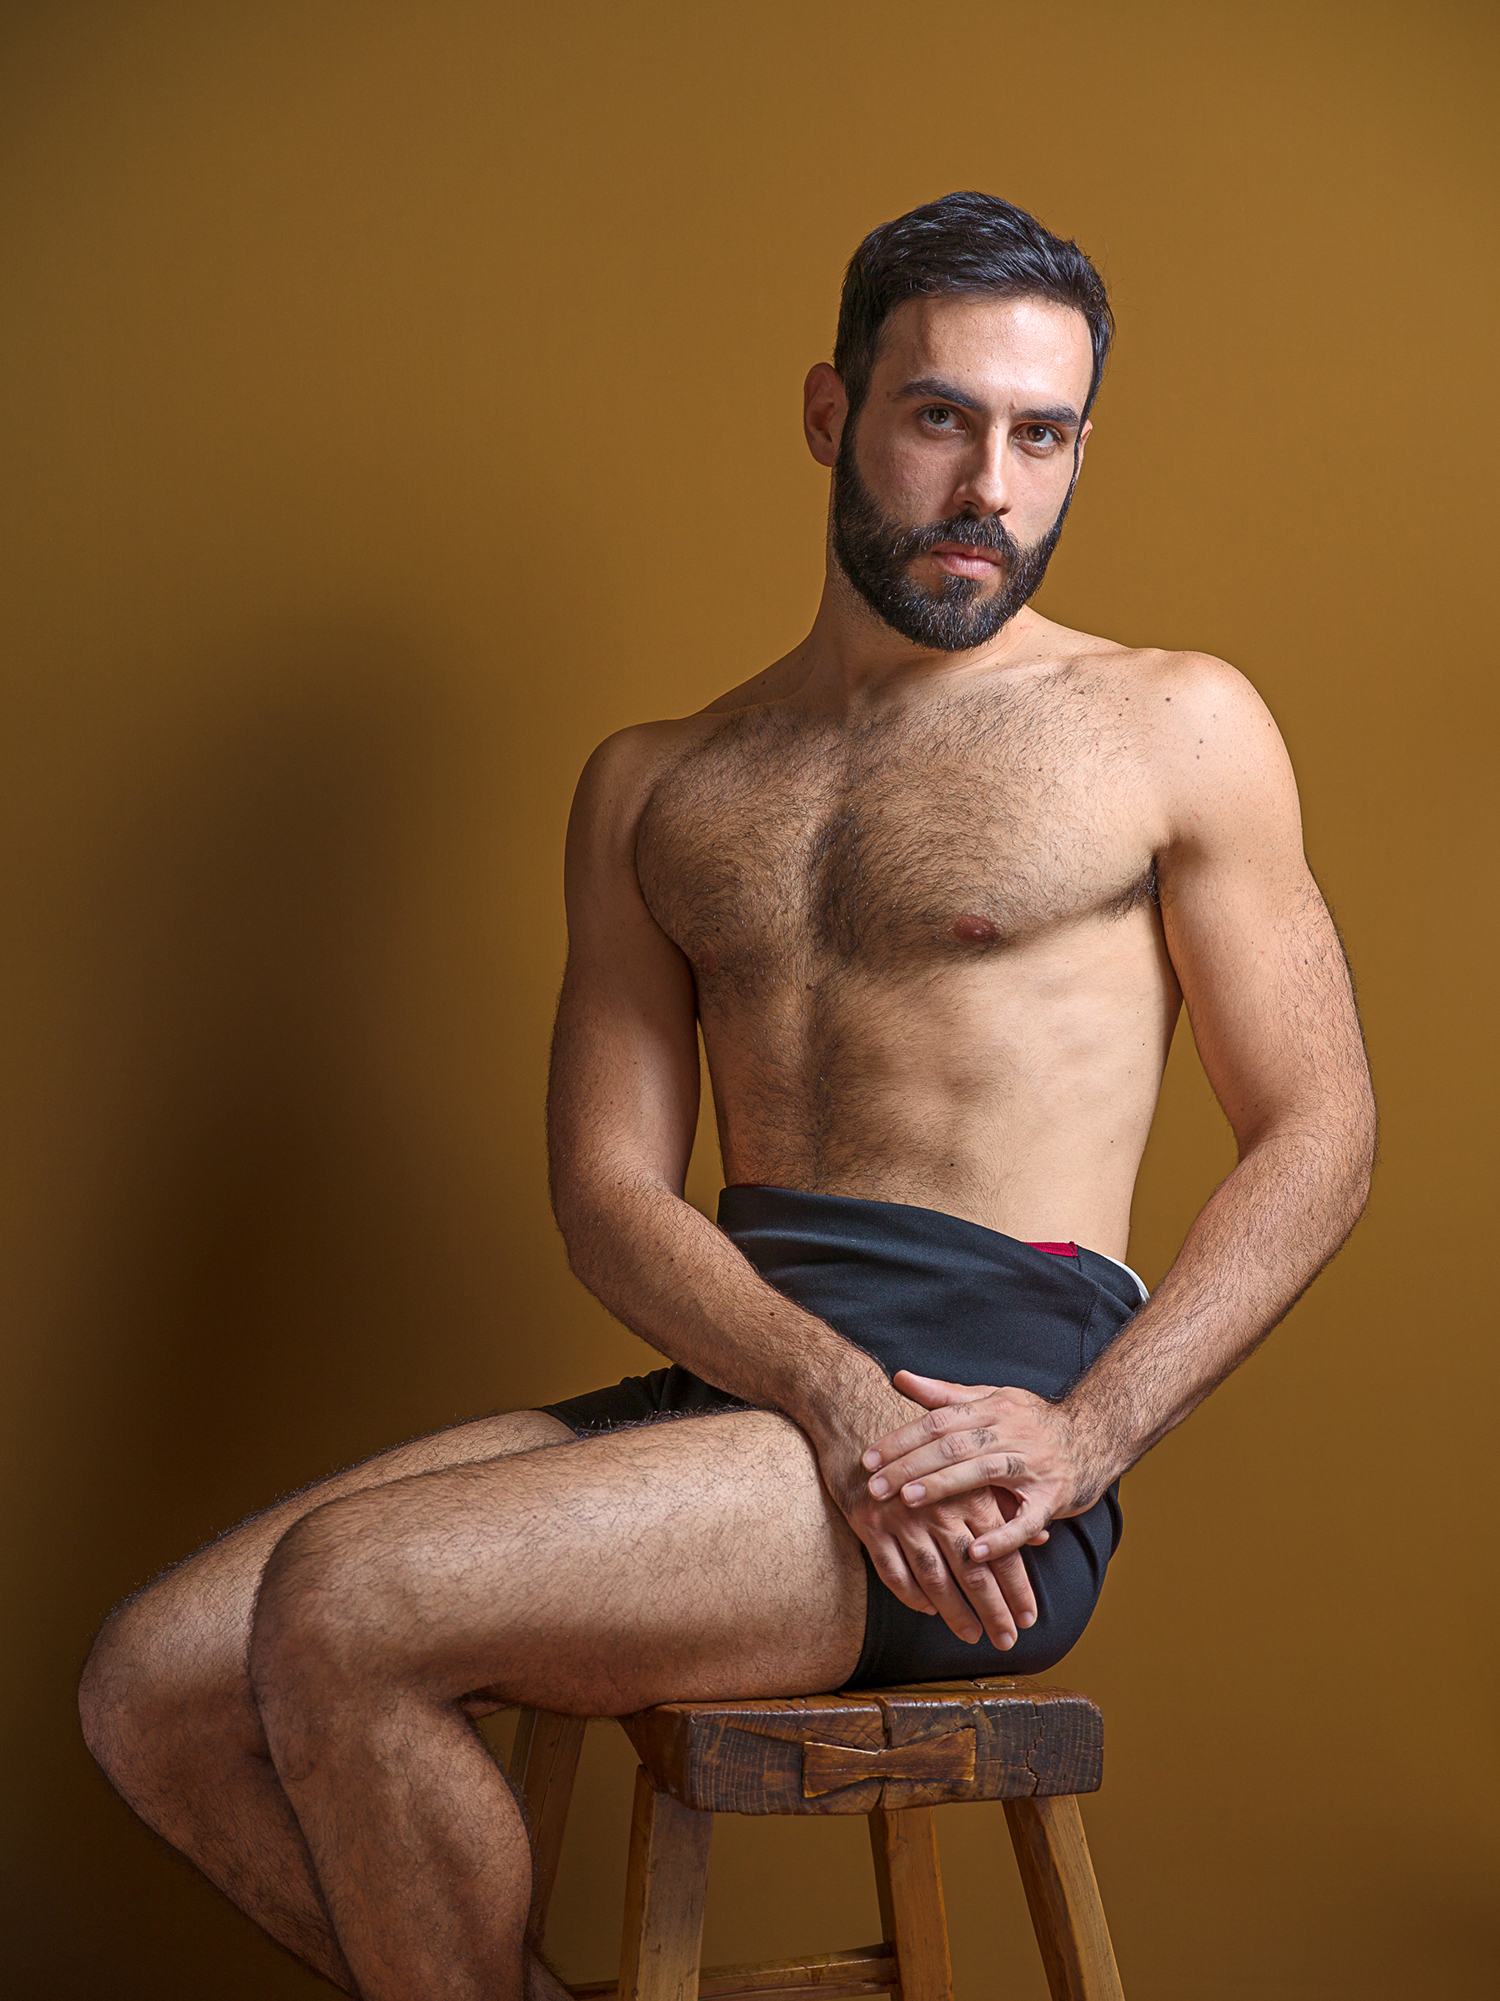 Intimate Strangers,Gabriele Sitting on Wooden Stool